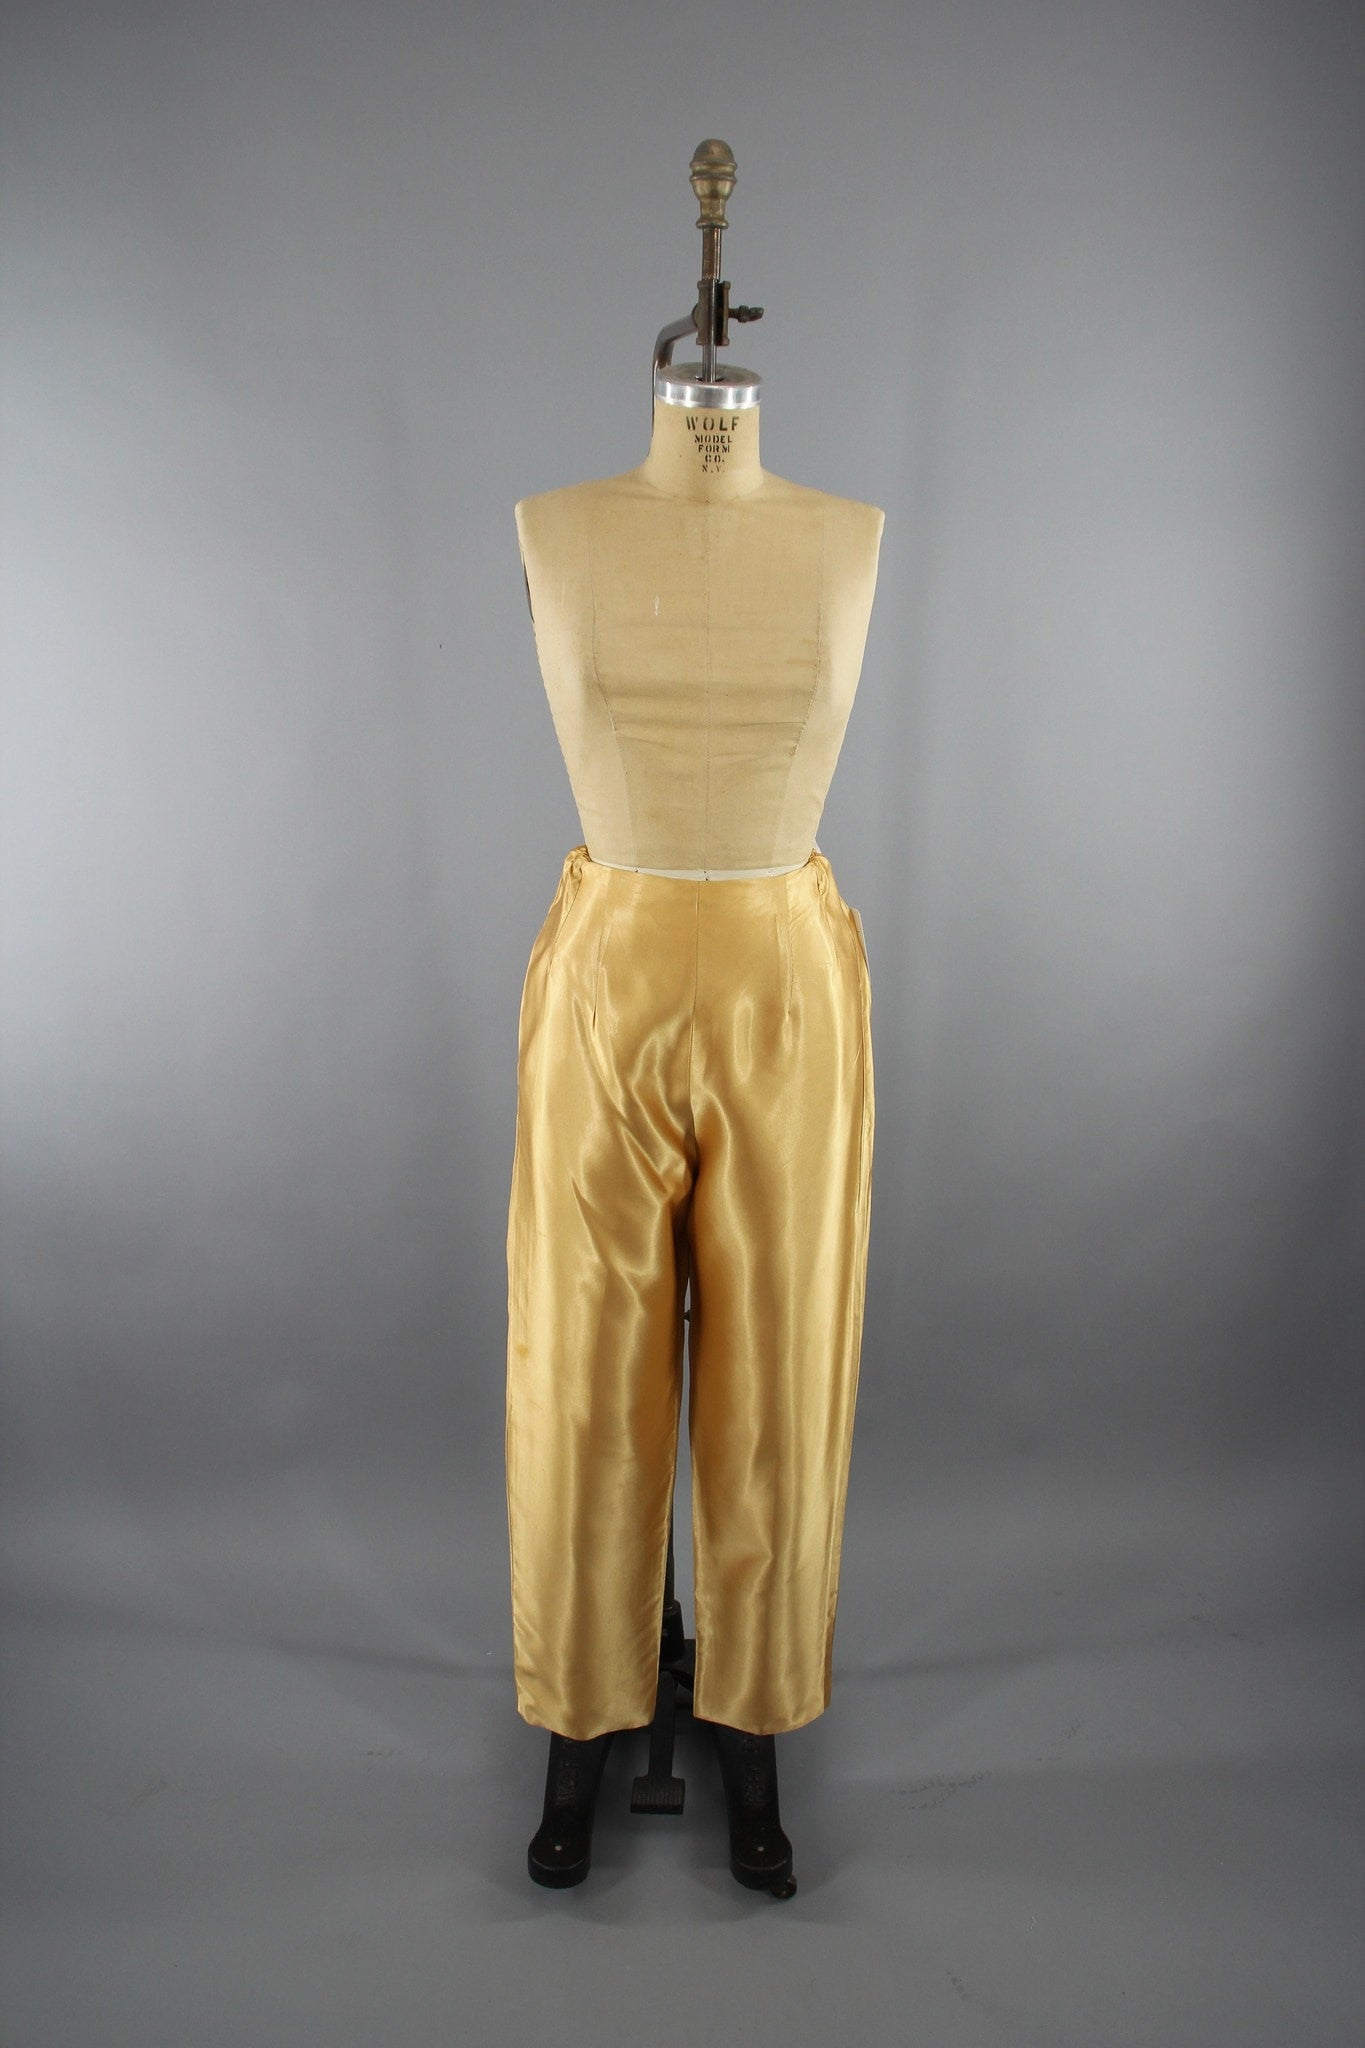 Vintage 1960s Gold Satin Cigarette Pants / High Waisted Disco Pants Bottoms ThisBlueBIrd